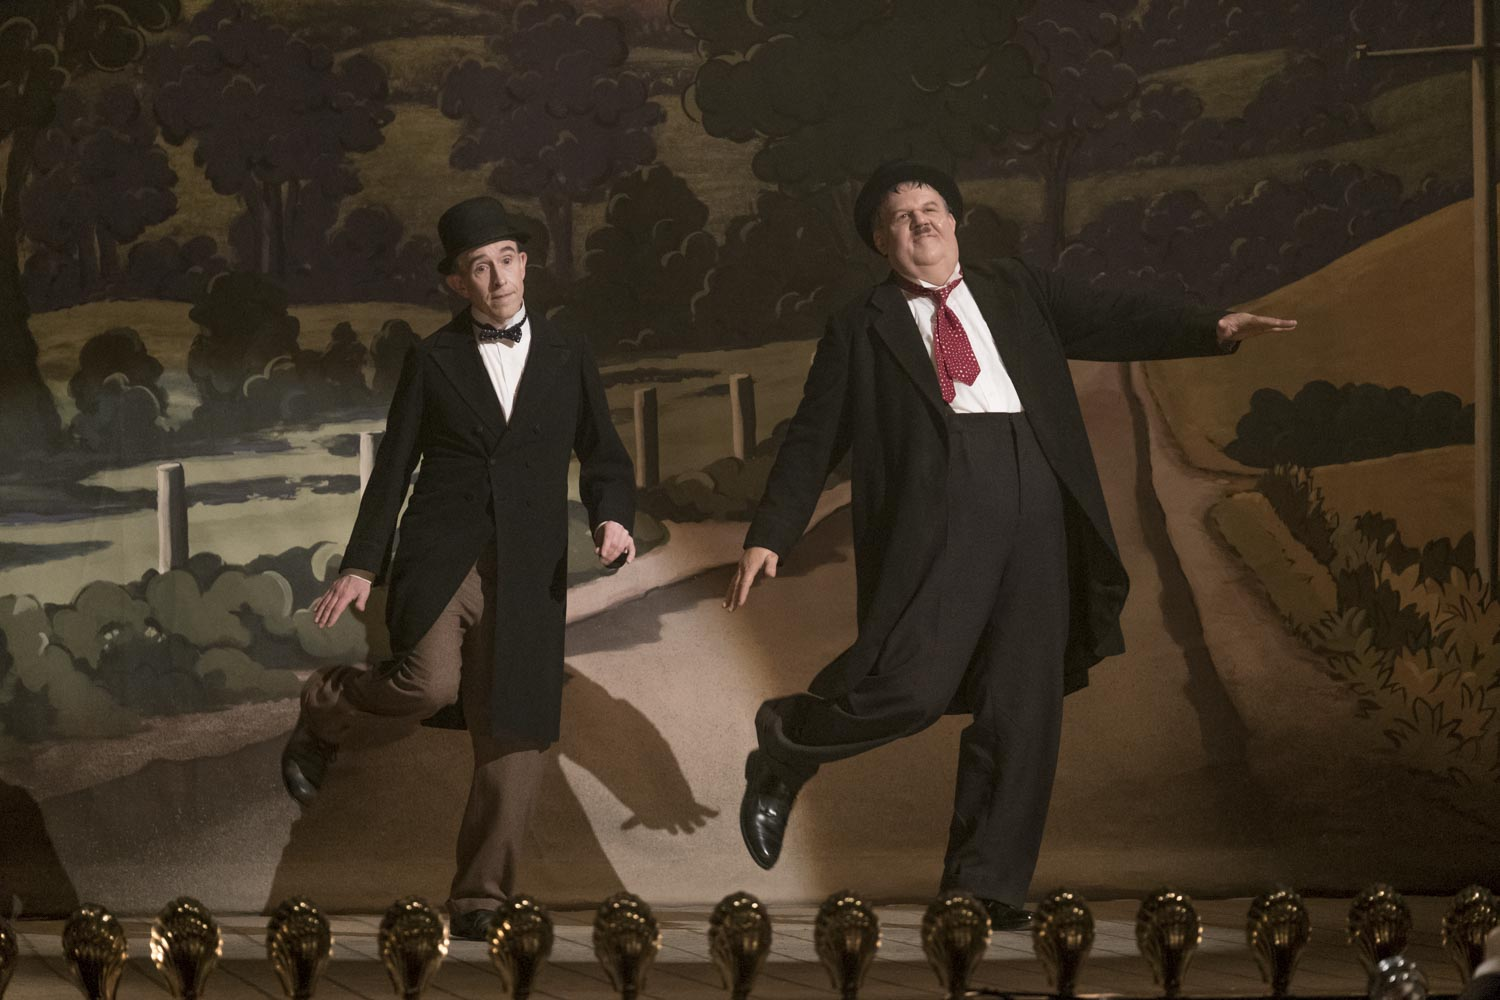 Stan Laurel (Steve Coogan, left) and Oliver Hardy (John C. Reilly) re-enact one of their famous routines in Stan & Ollie